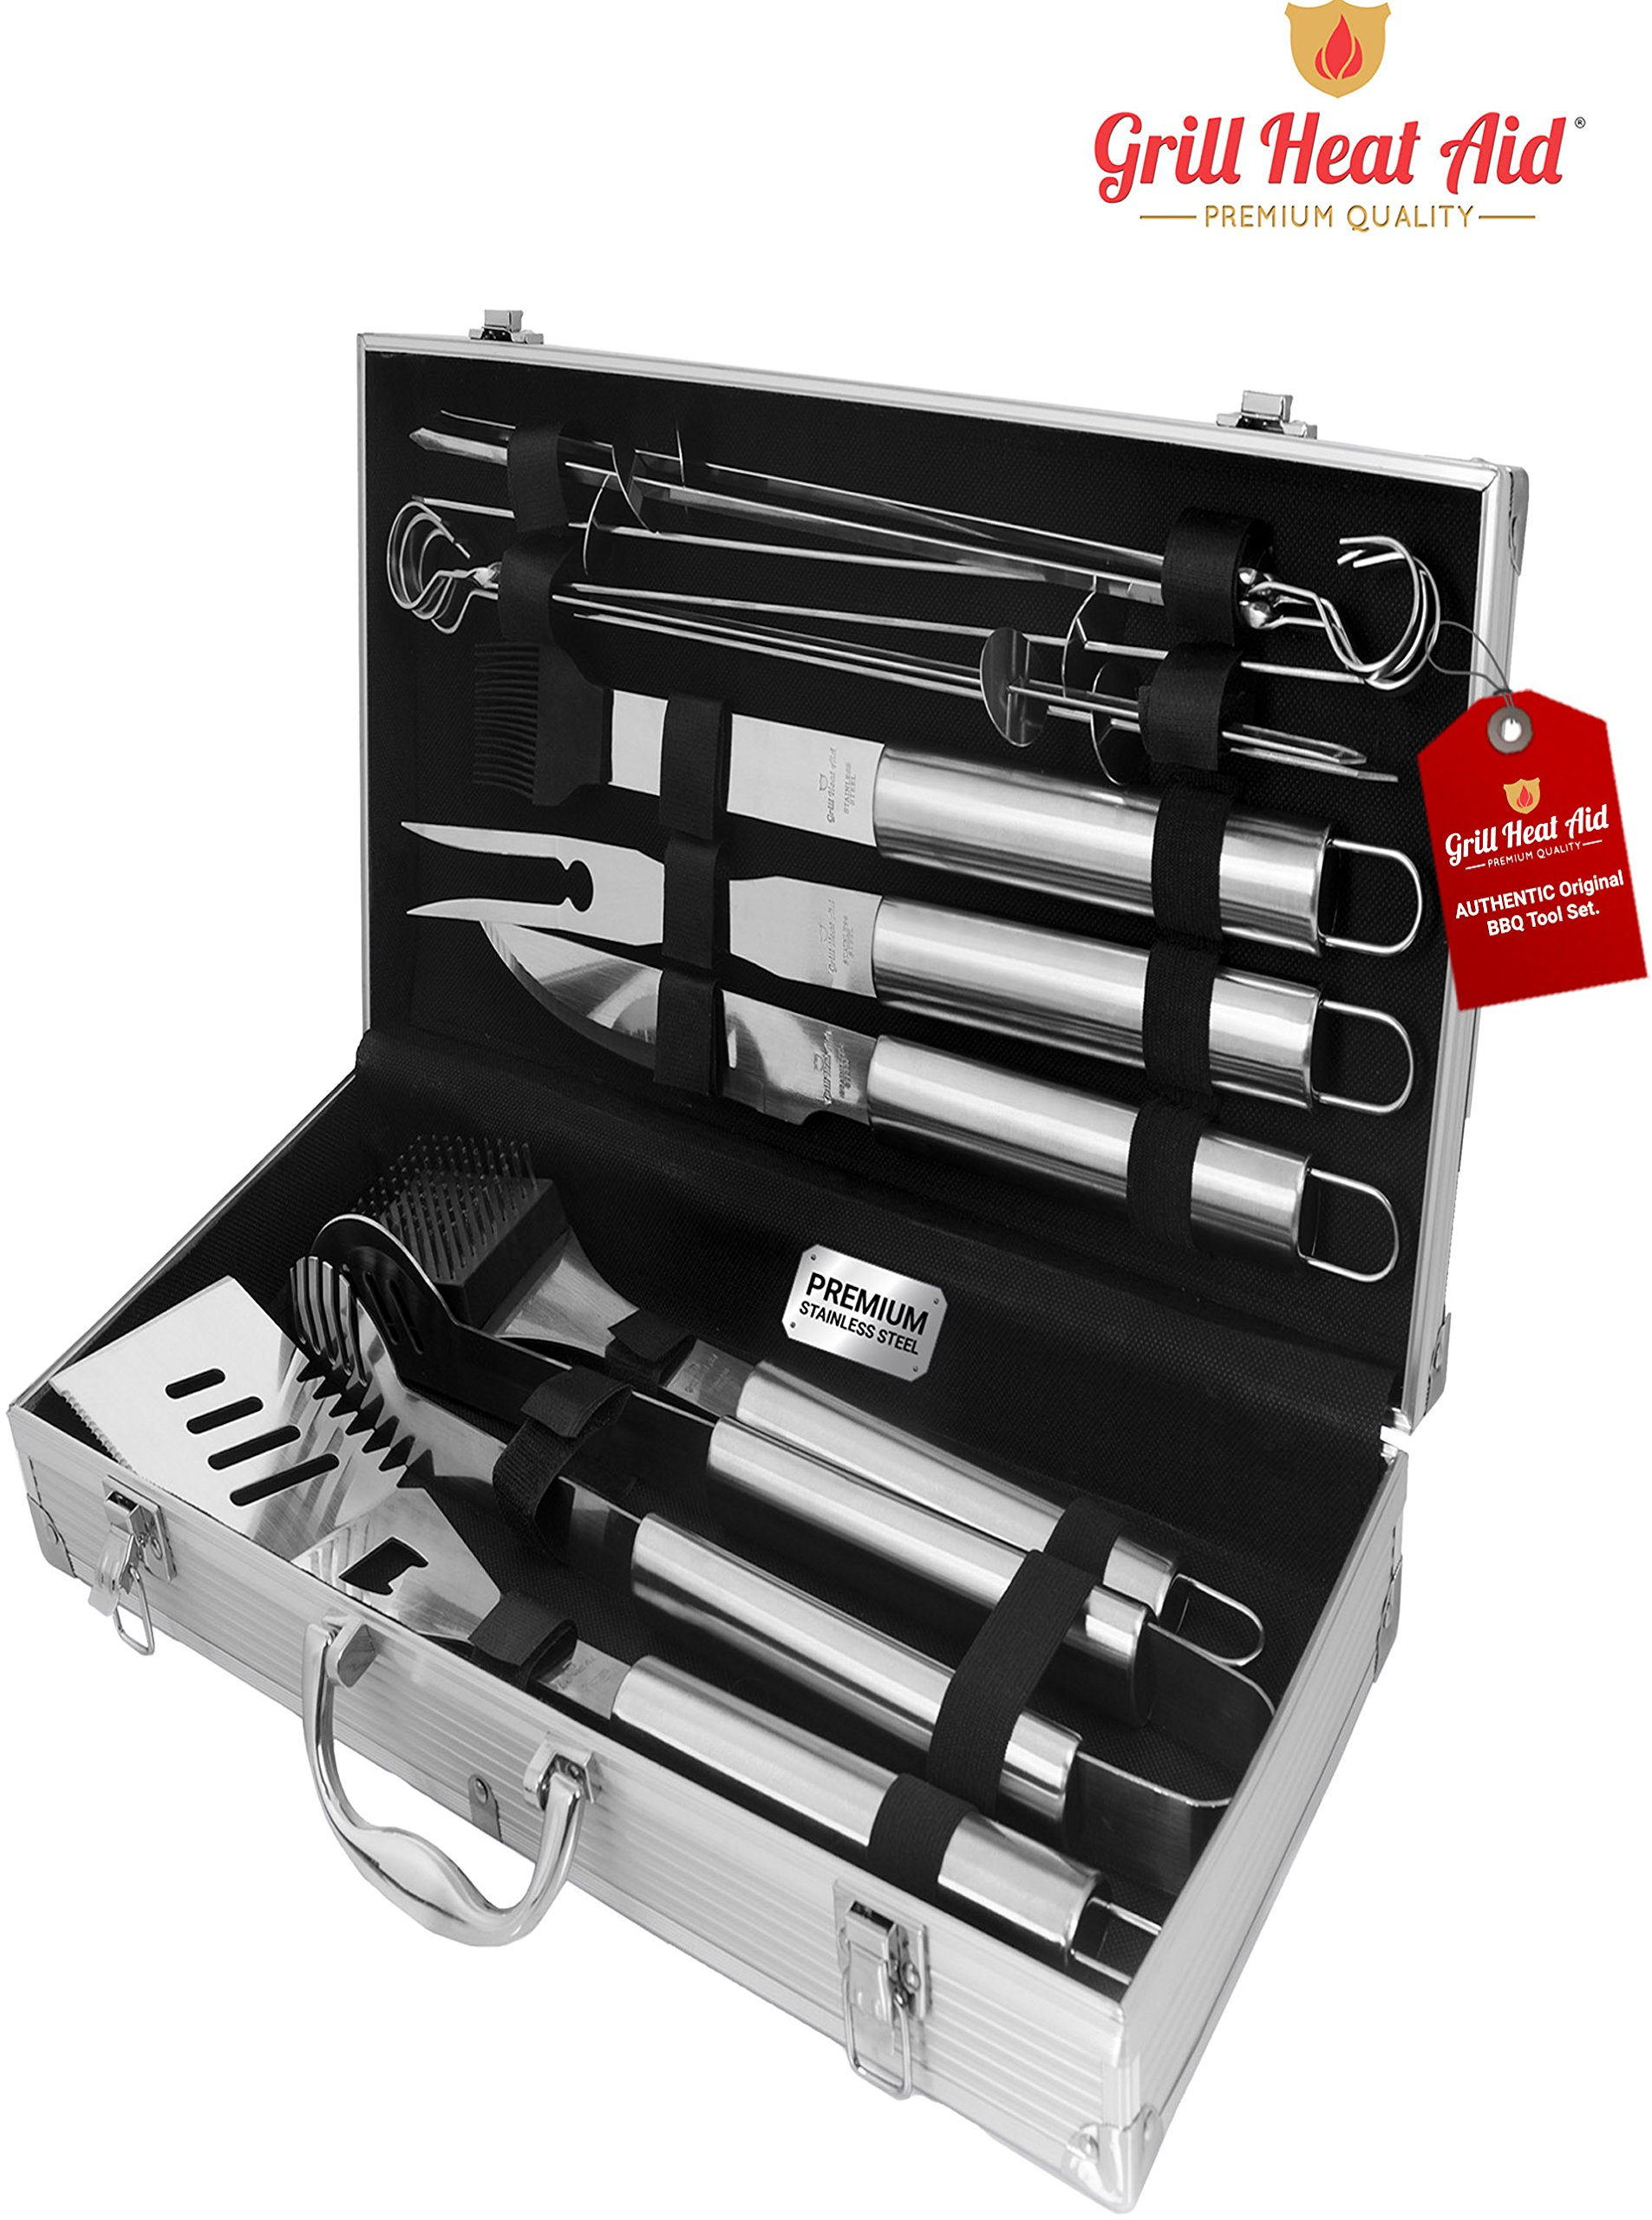 Stainless Steel BBQ Smoker Accessories – (Premium 12 Pc Set) – Sturdy, Well Weighted Precision Barbecue Grill Tool Set w/ XL Burn & Rust Proof Design Construction – Looks Sharp, Makes the Best Gift